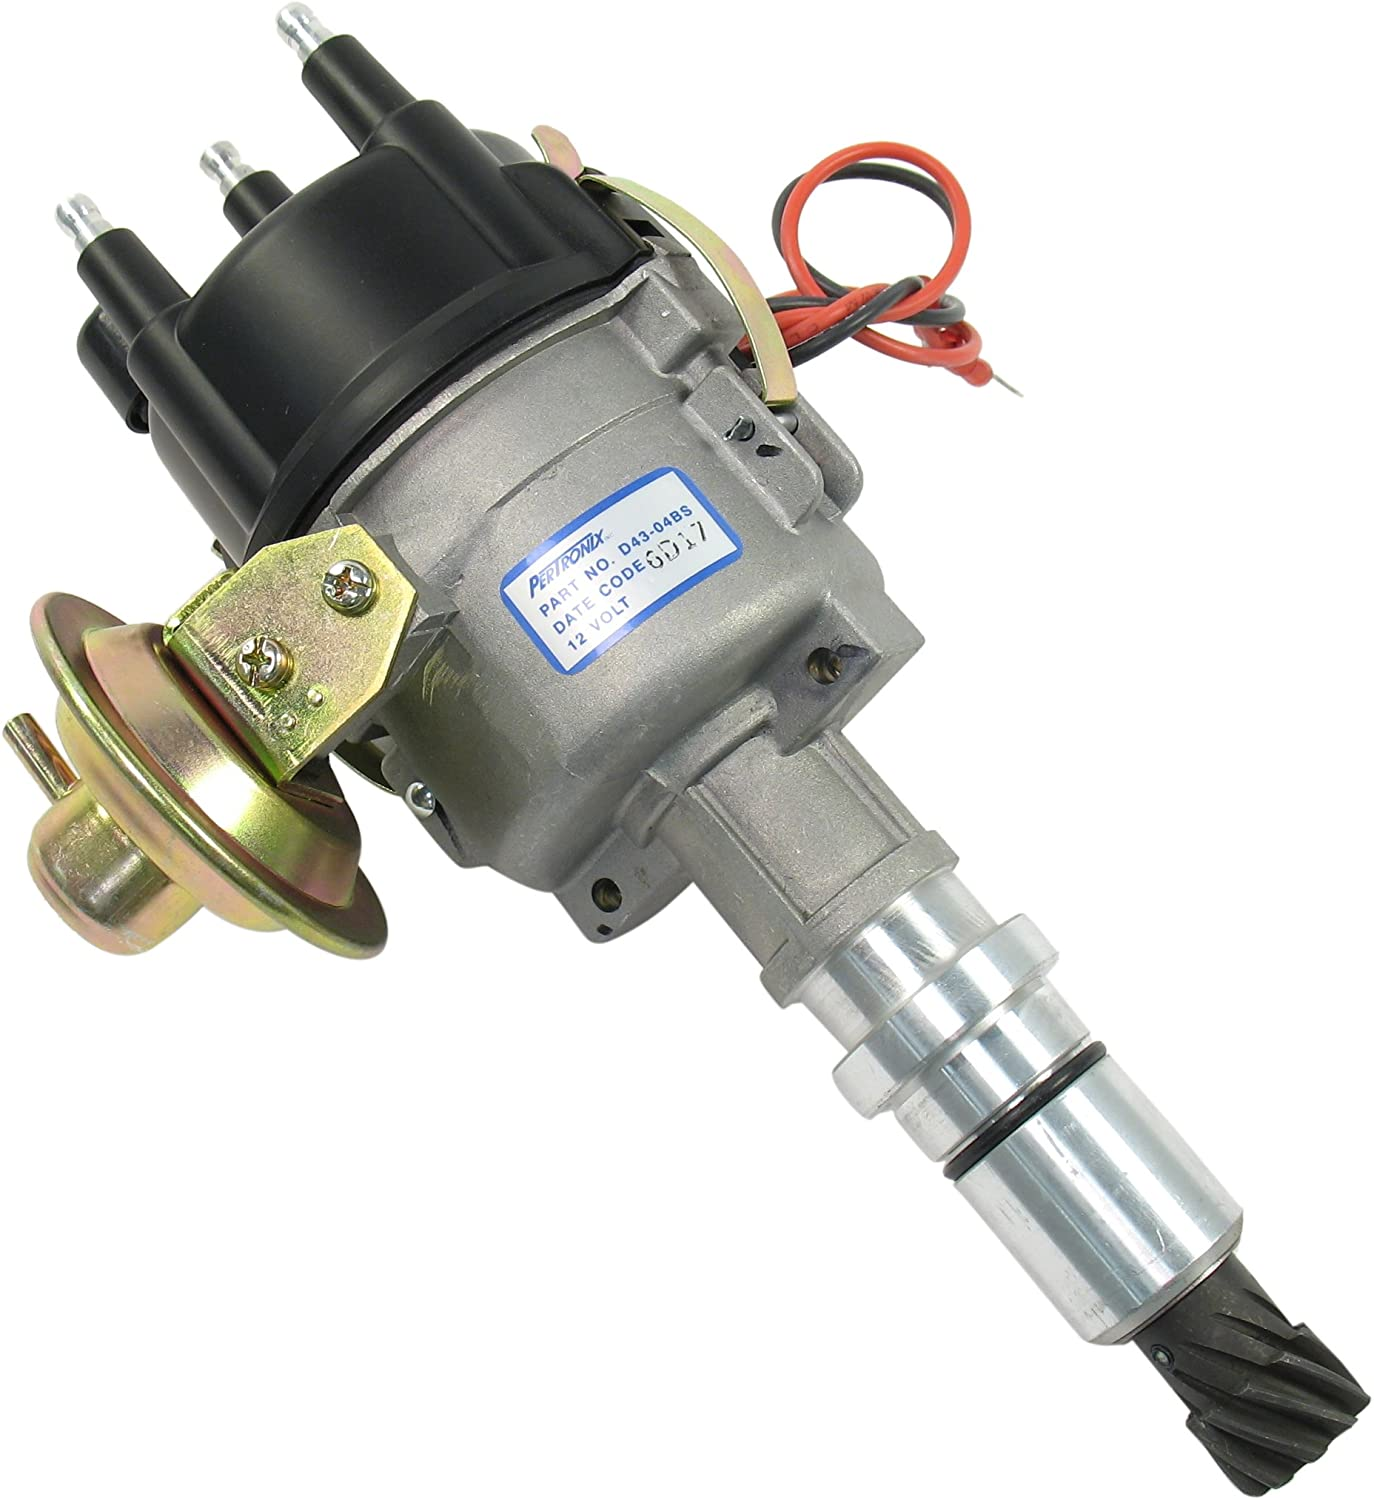 Pertronix D21-11A Distributor Industrial for Wisconsin 2 Cylinder Odd Fire